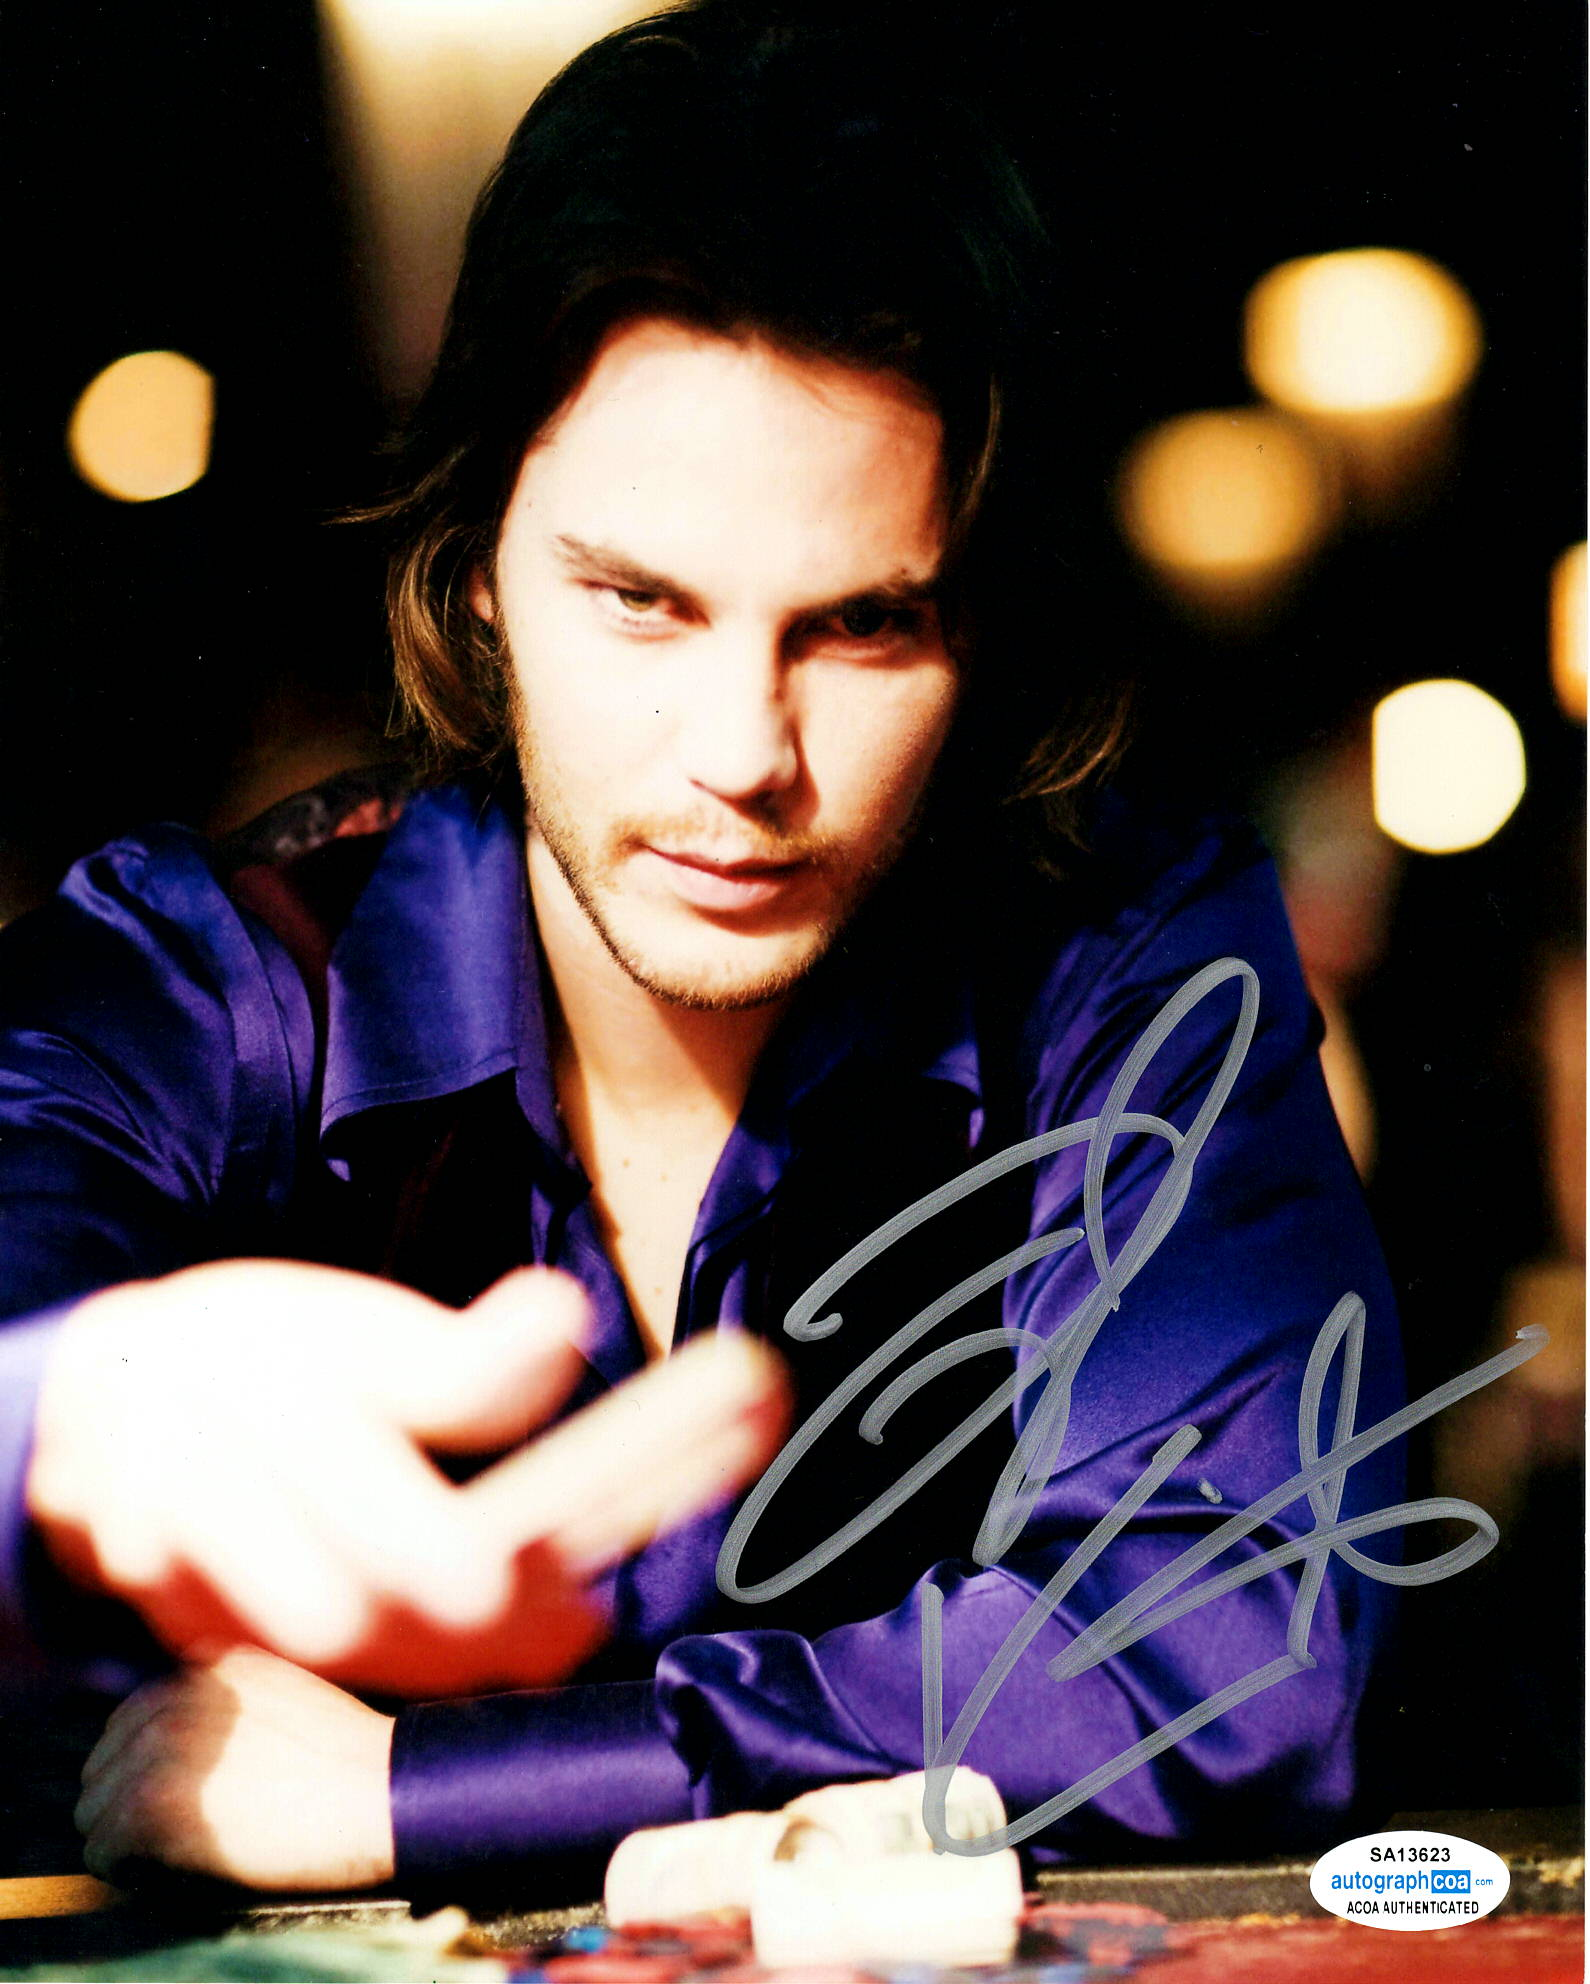 Taylor Kitsch Wolverine Signed Autograph 8x10 Photo